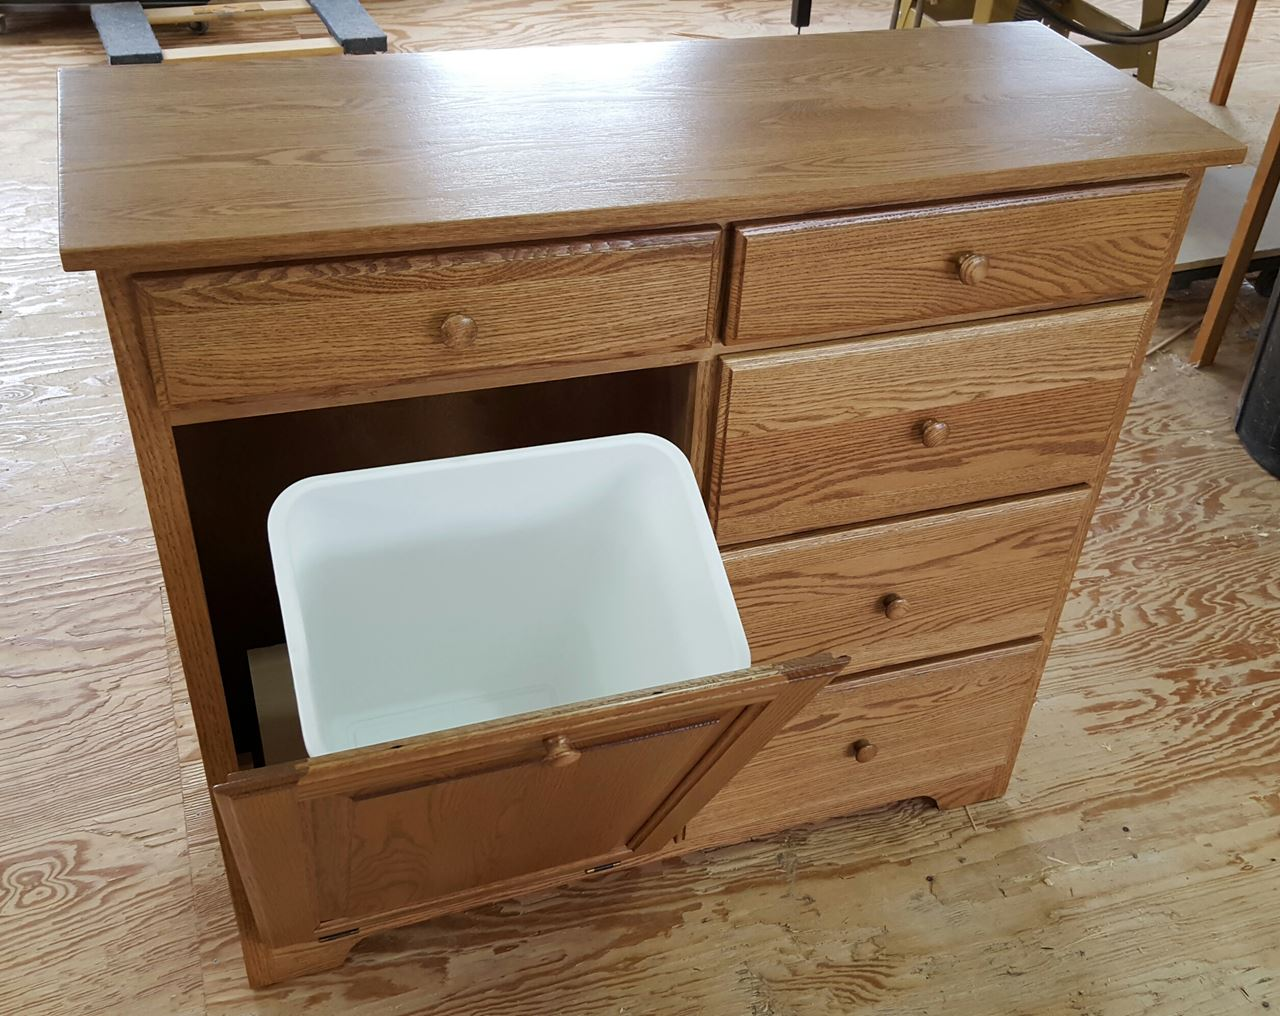 ... Picture Of Delux Tilt Out Trash Bin With 5 Storage Drawers ...